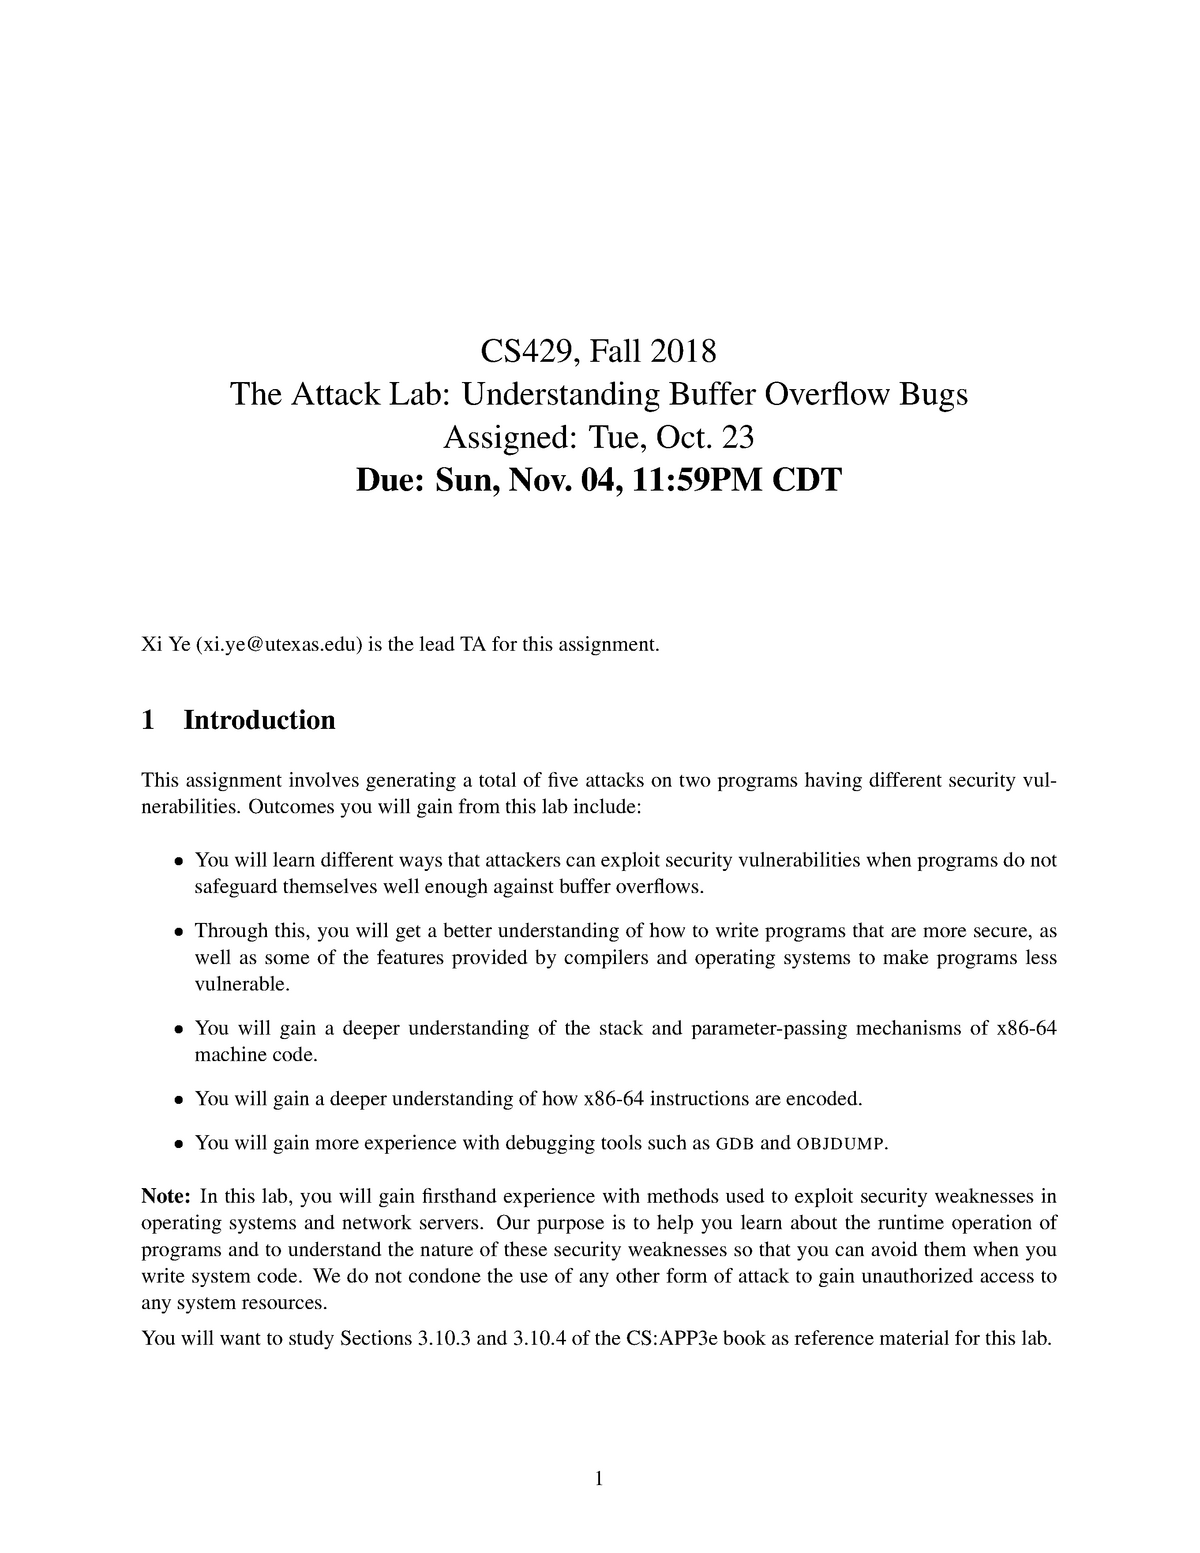 Attacklab - handout for last lab assignment - CS429